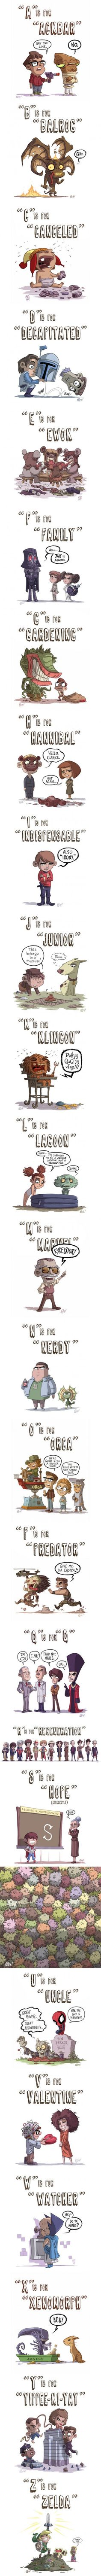 N is for Nerd! I pooped when I saw this! Jurassic Park=Best Movie Ever